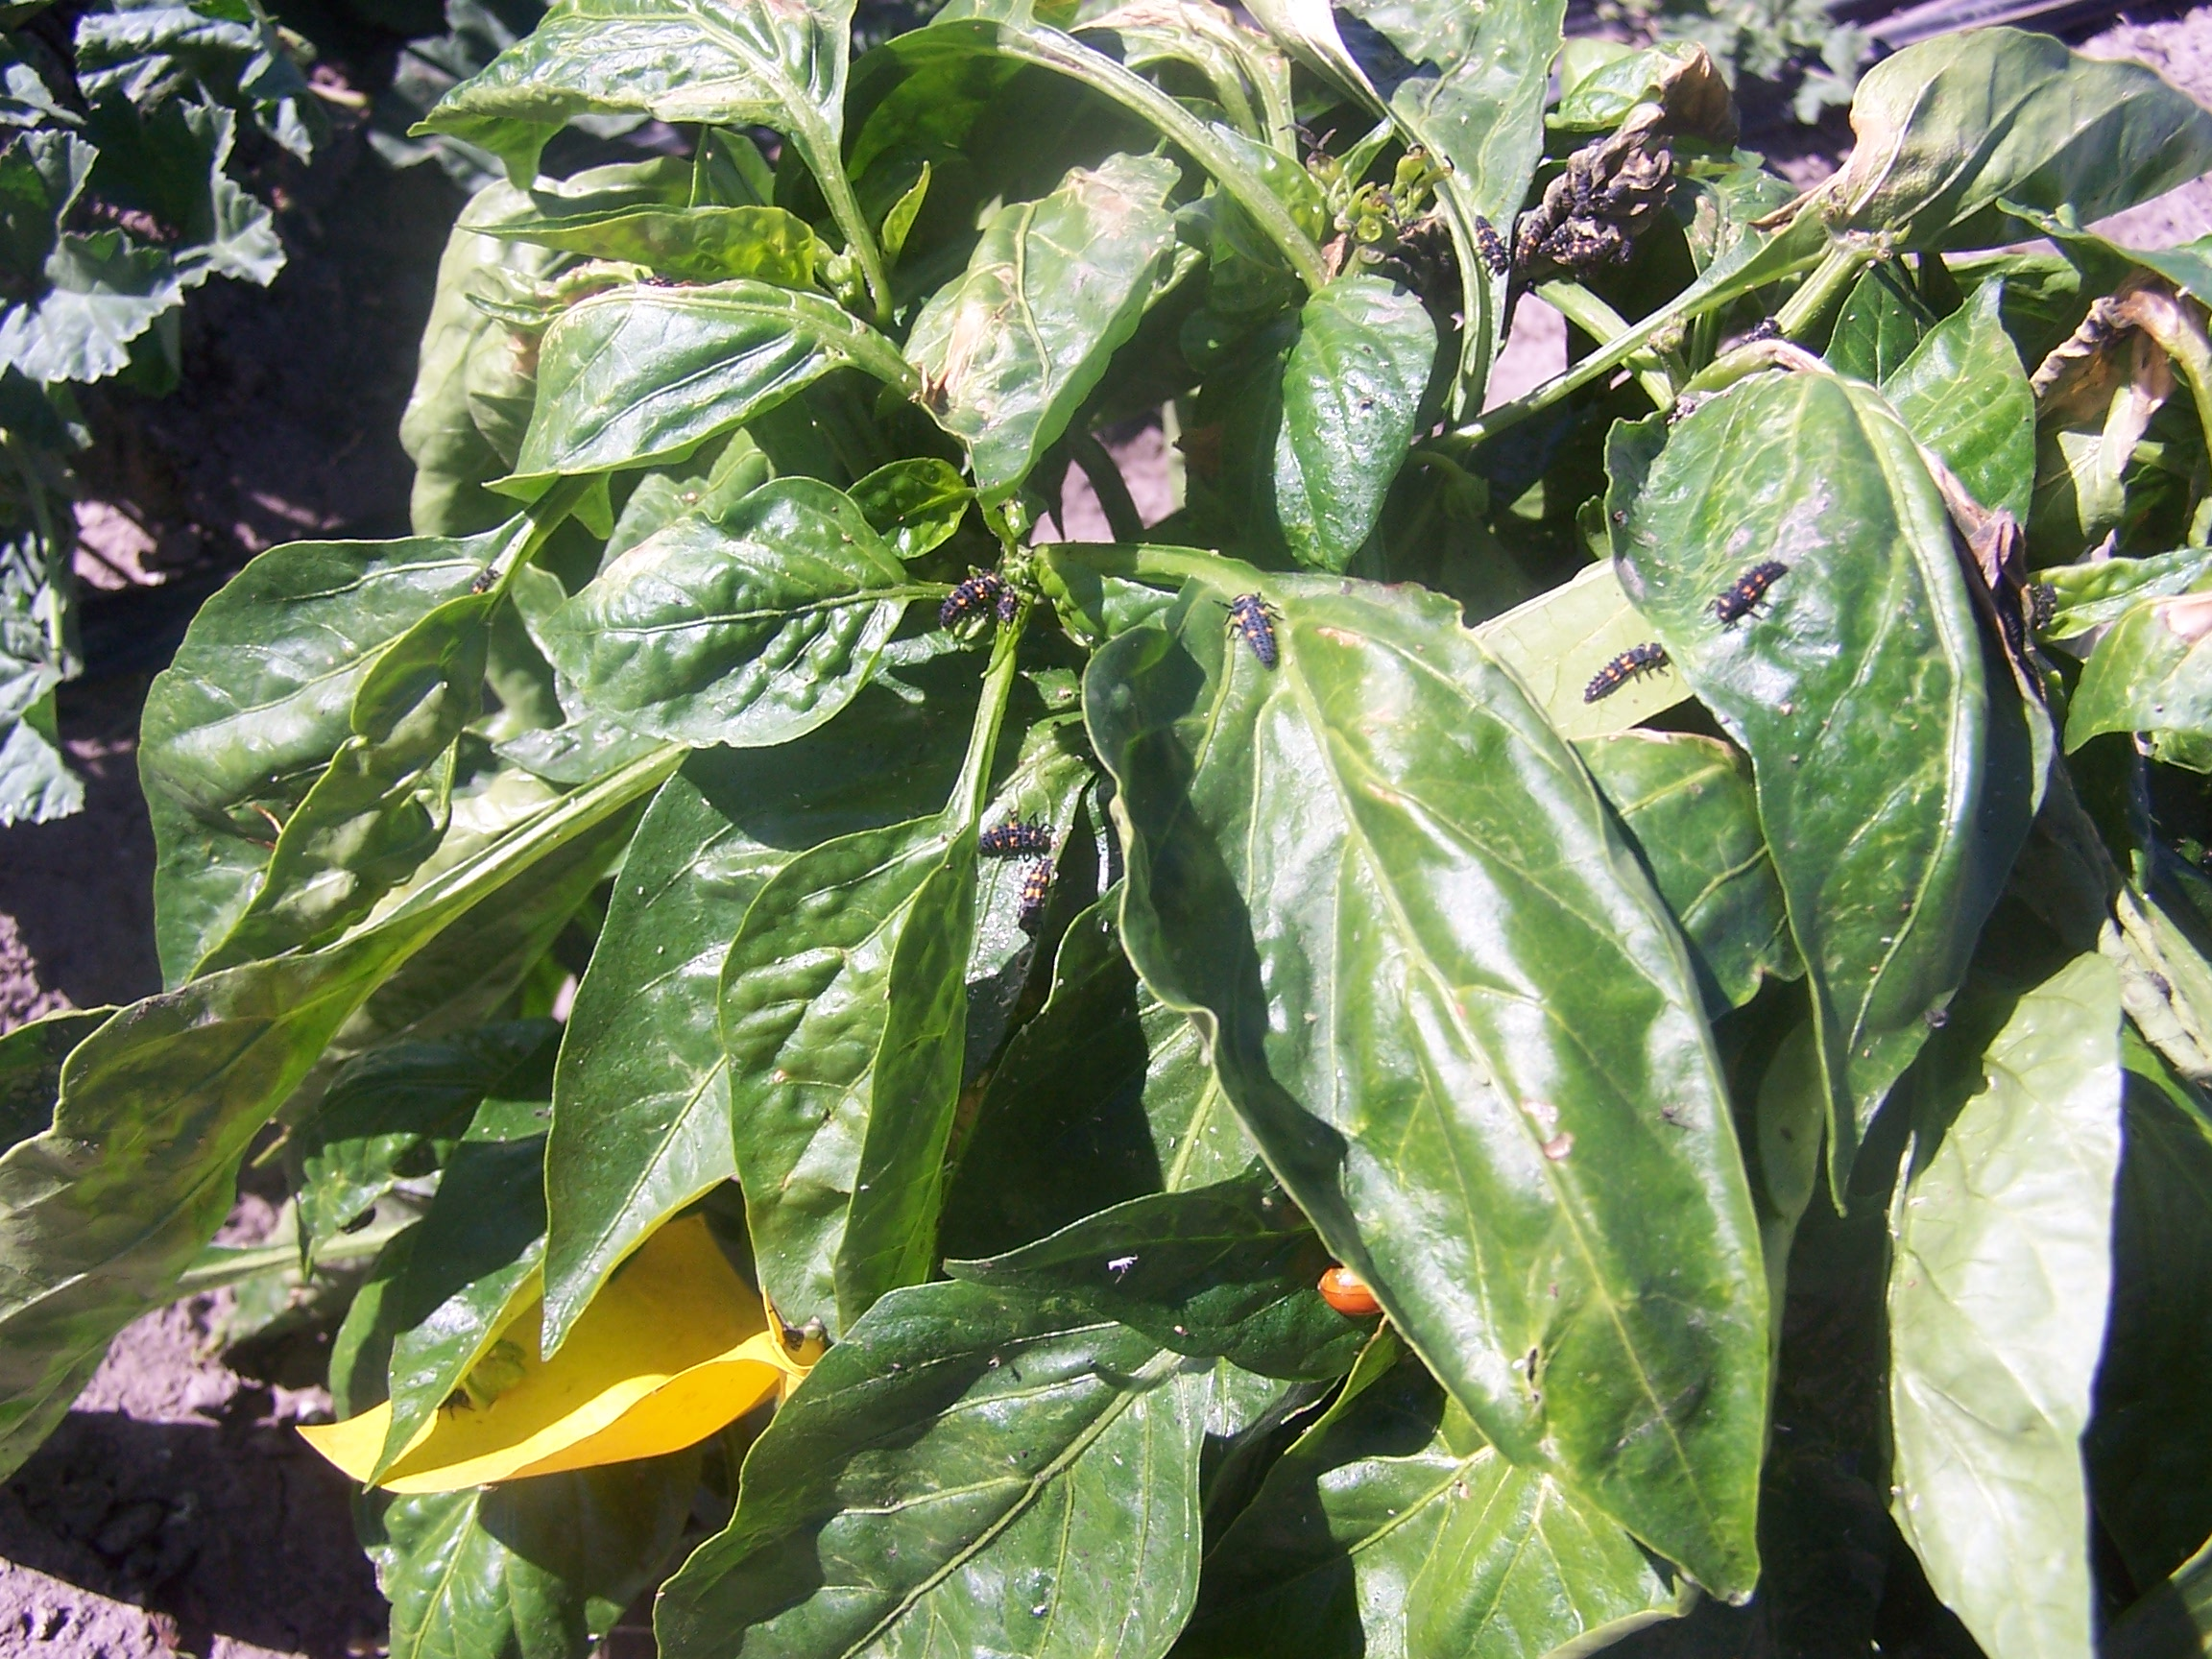 Beneficial insects in the vegetable garden: your free workforce